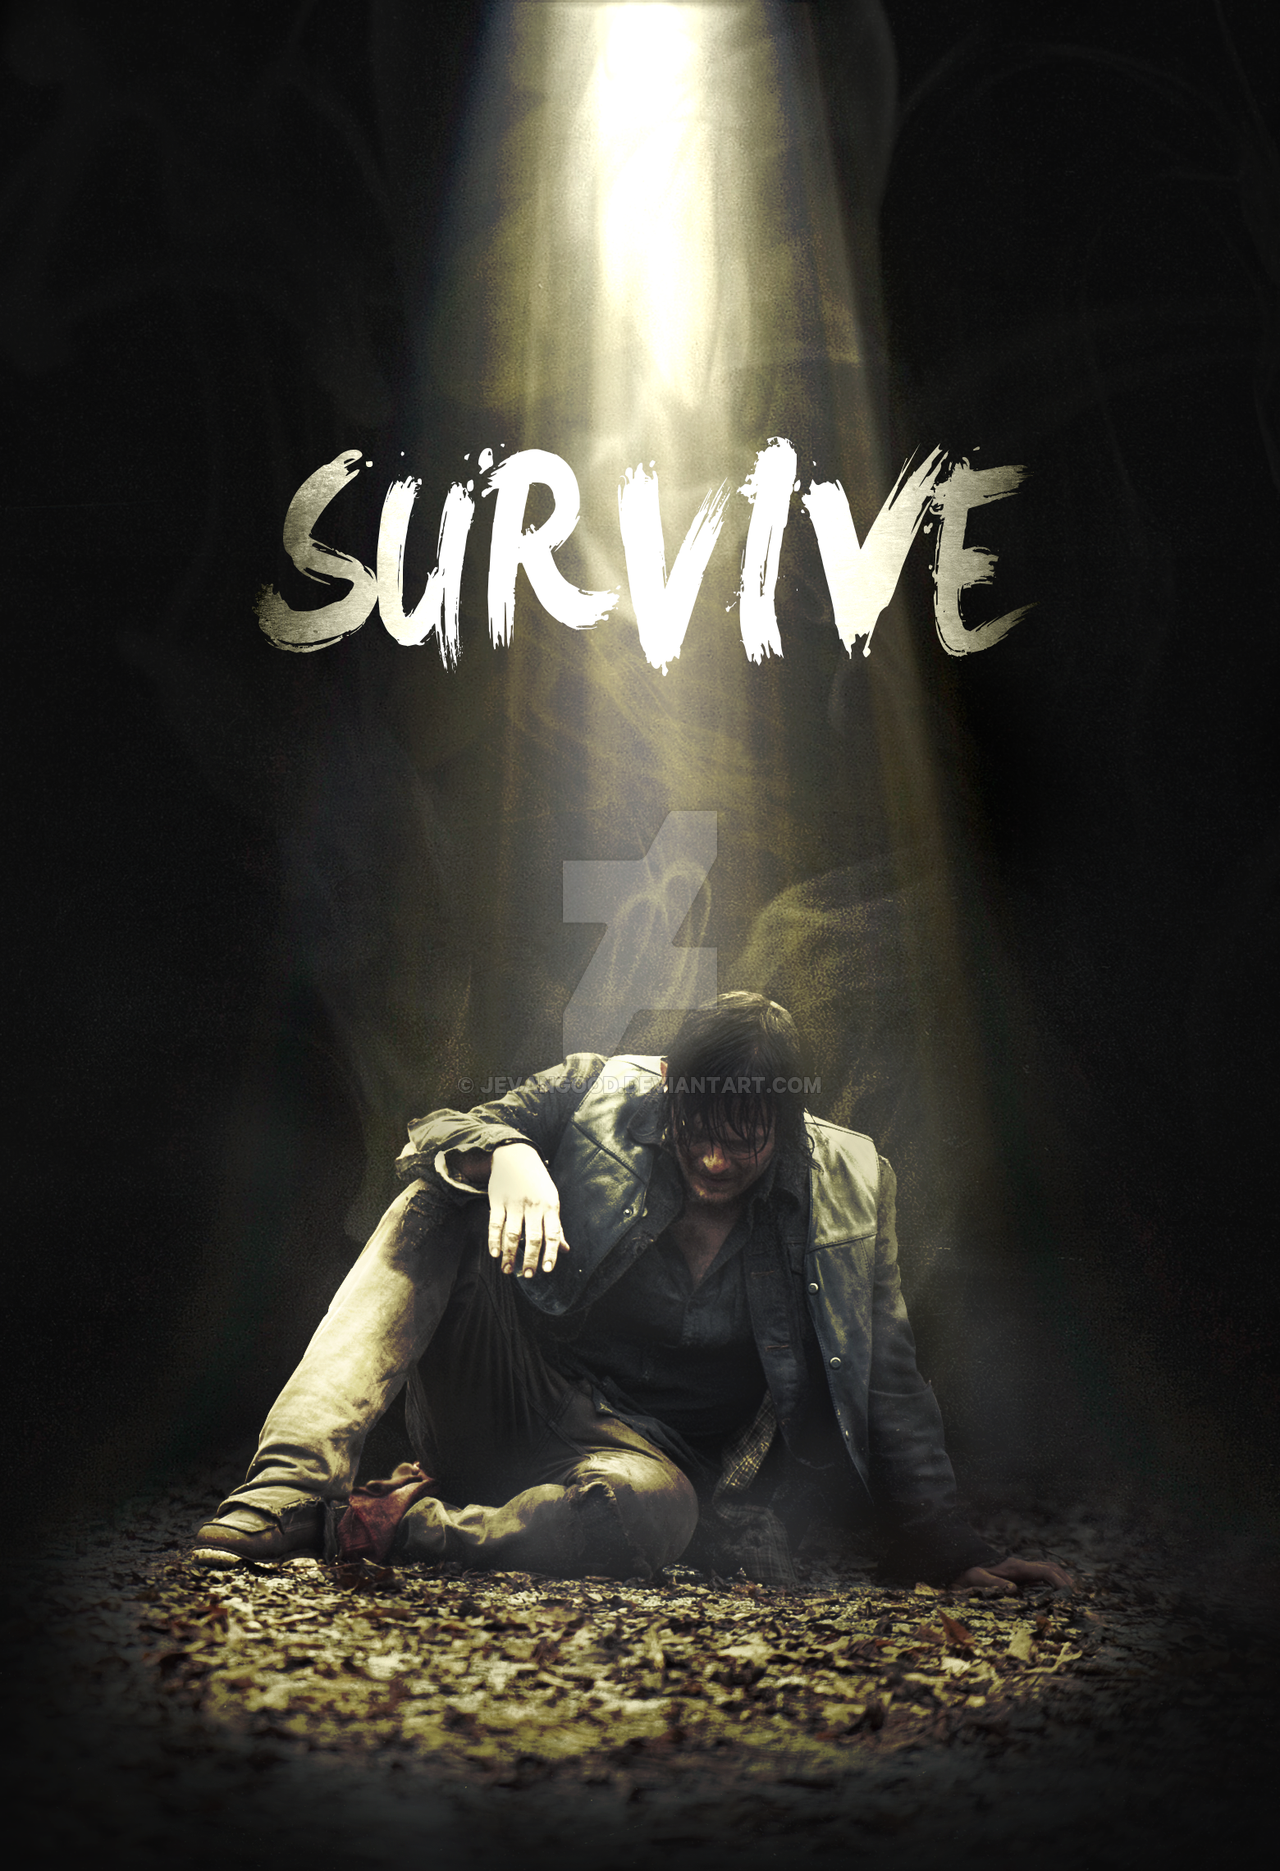 The Walking Dead Season 5 Daryl Poster By Jevangood With Images